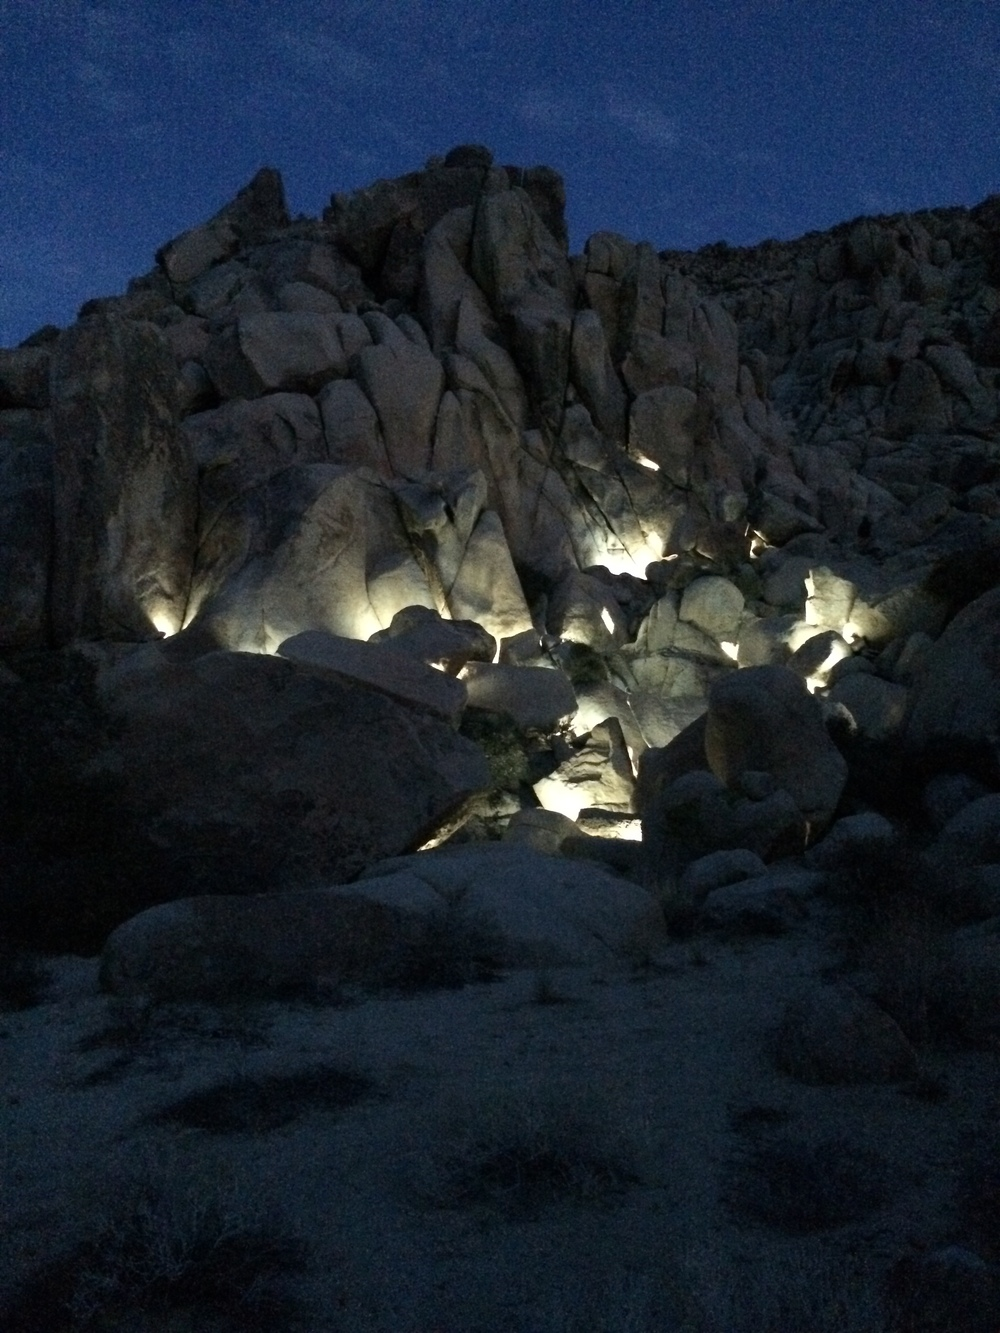 Illuminated Passage  Light 1/4 Square Mile    Exhibition: Joshua Tree Triennial, Boxo Projects  Invited to create a site specific sculpture for the Joshua Triennial curated by Metacurator and Boxo Projects. I built a Light Sculpture into the boulder field for invitees to hike through. The sculpture revealed itself as the sun set. Installed at Boxo Projects in Joshua Tree as part of the Joshua Tree Arts Festival curated by Boxo Projects and Metacurator.